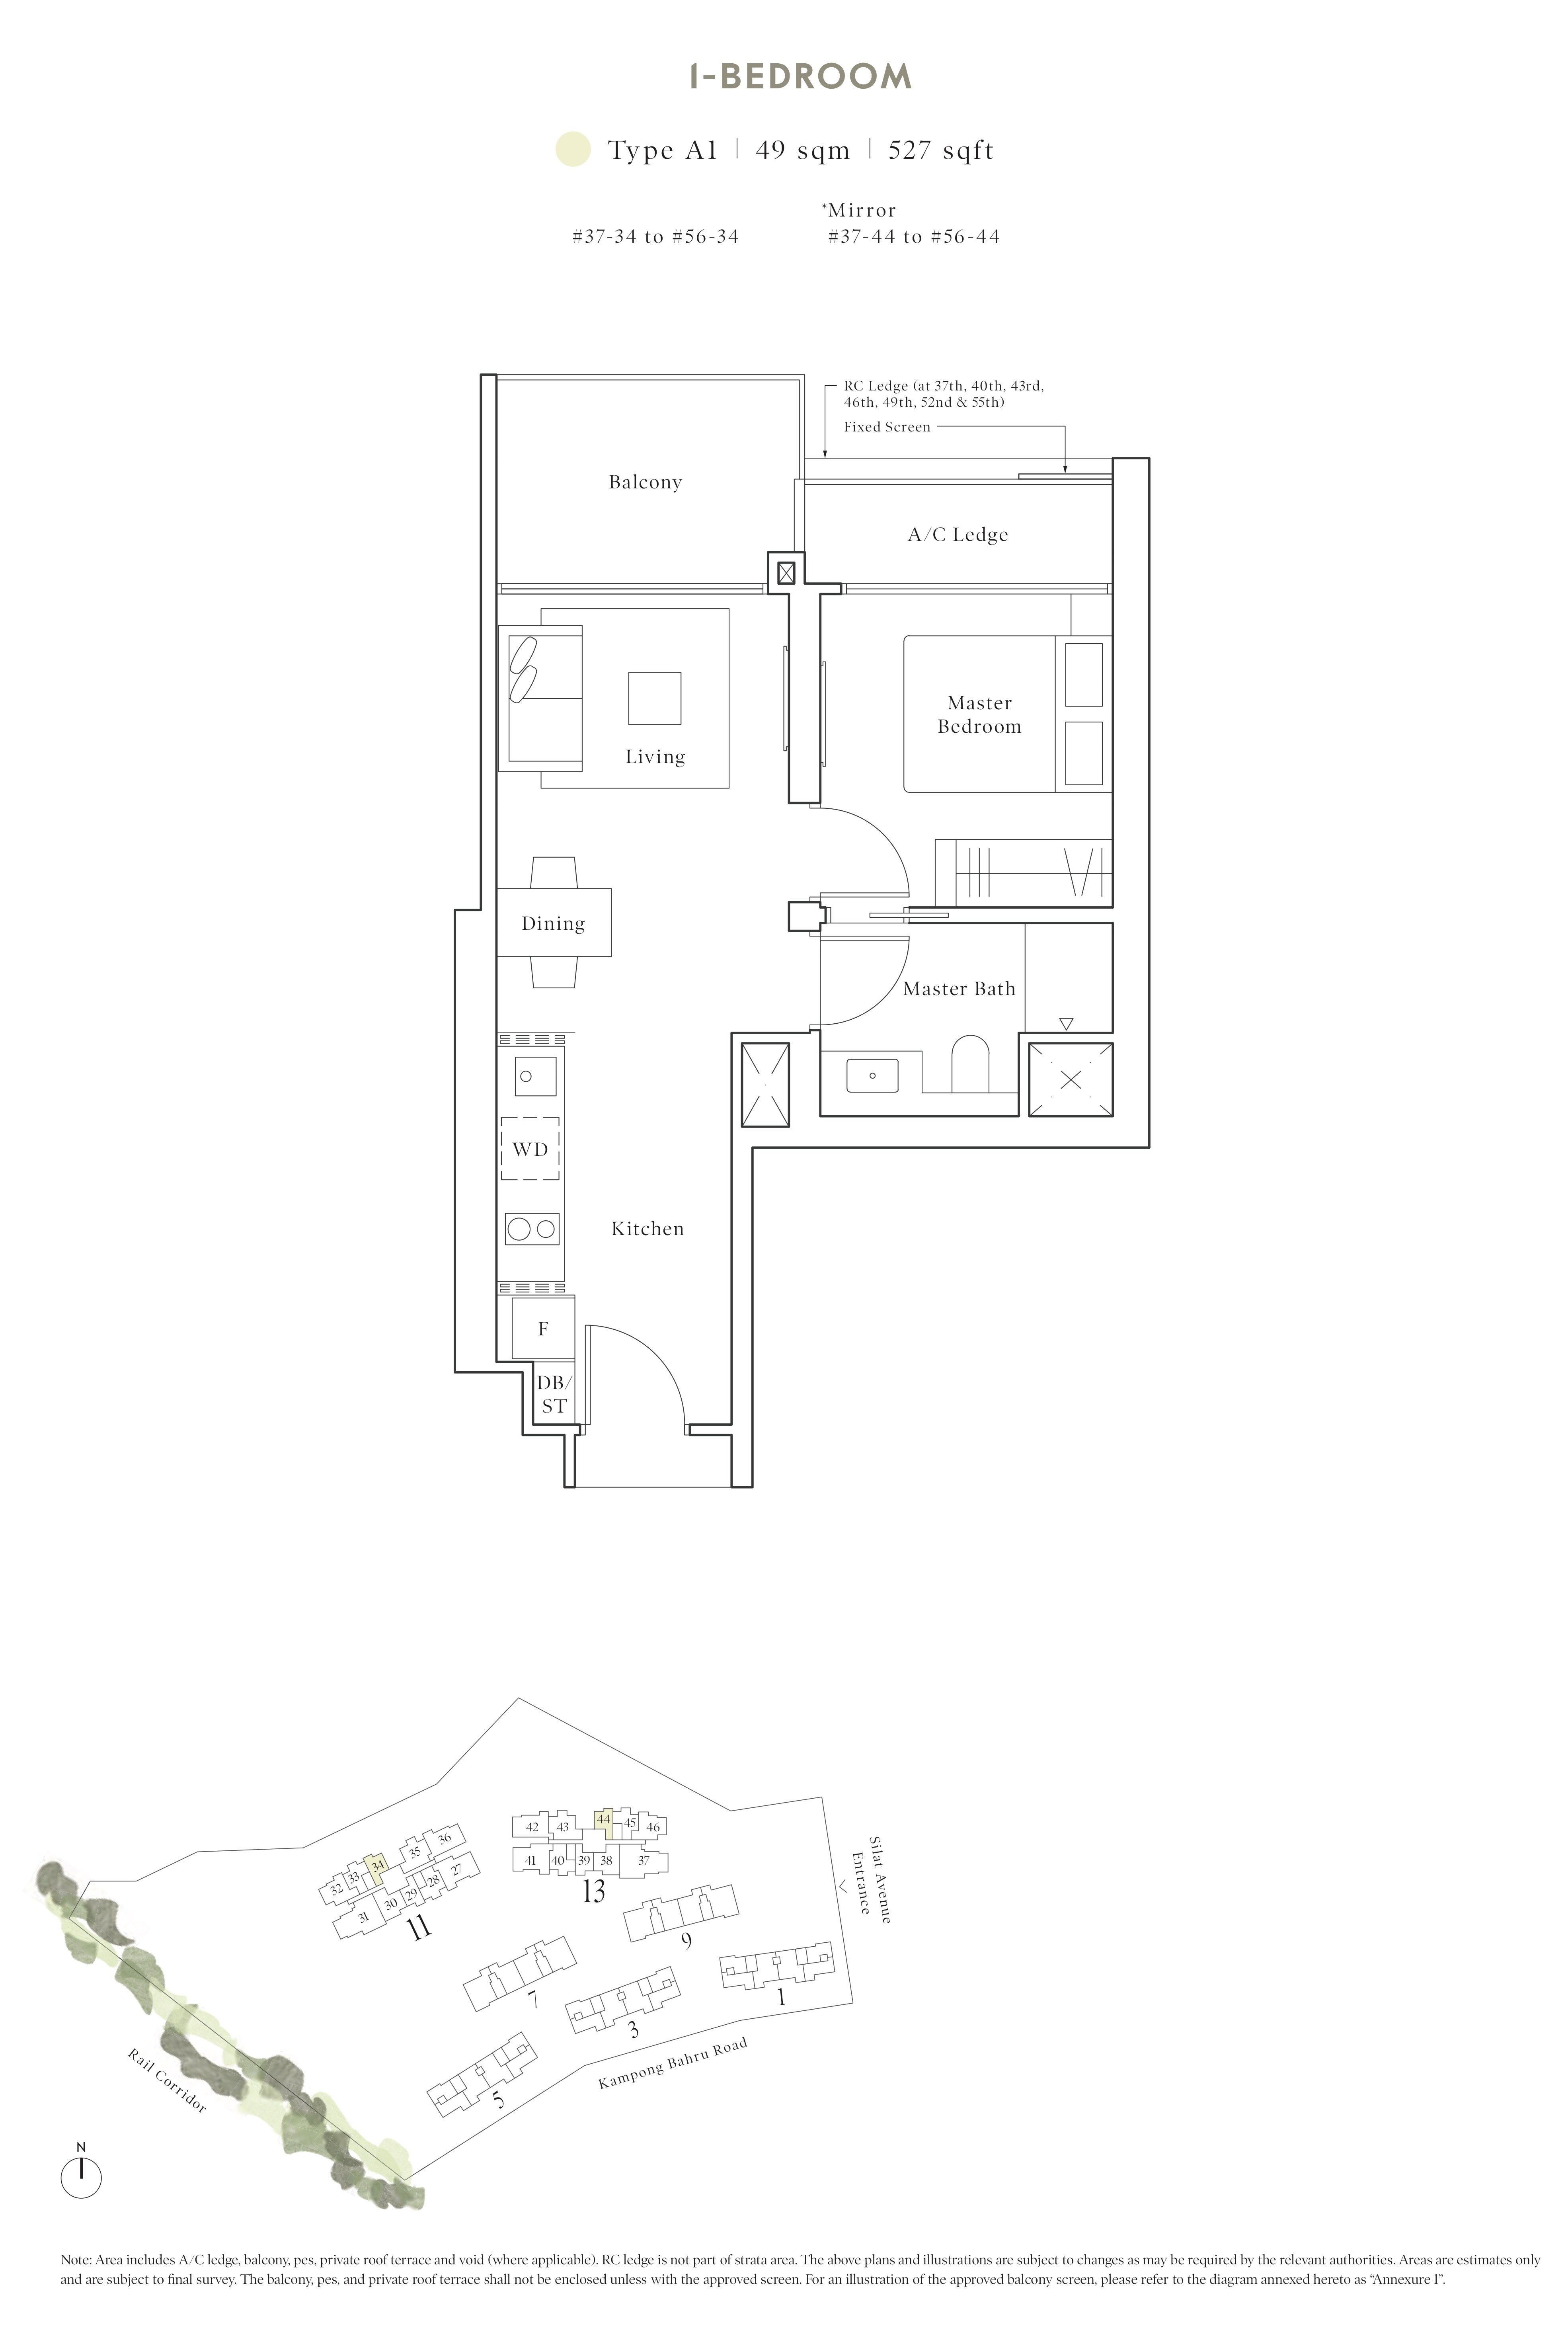 Avenue South Residence 南峰雅苑 peak floor plan 1-bedroom a1